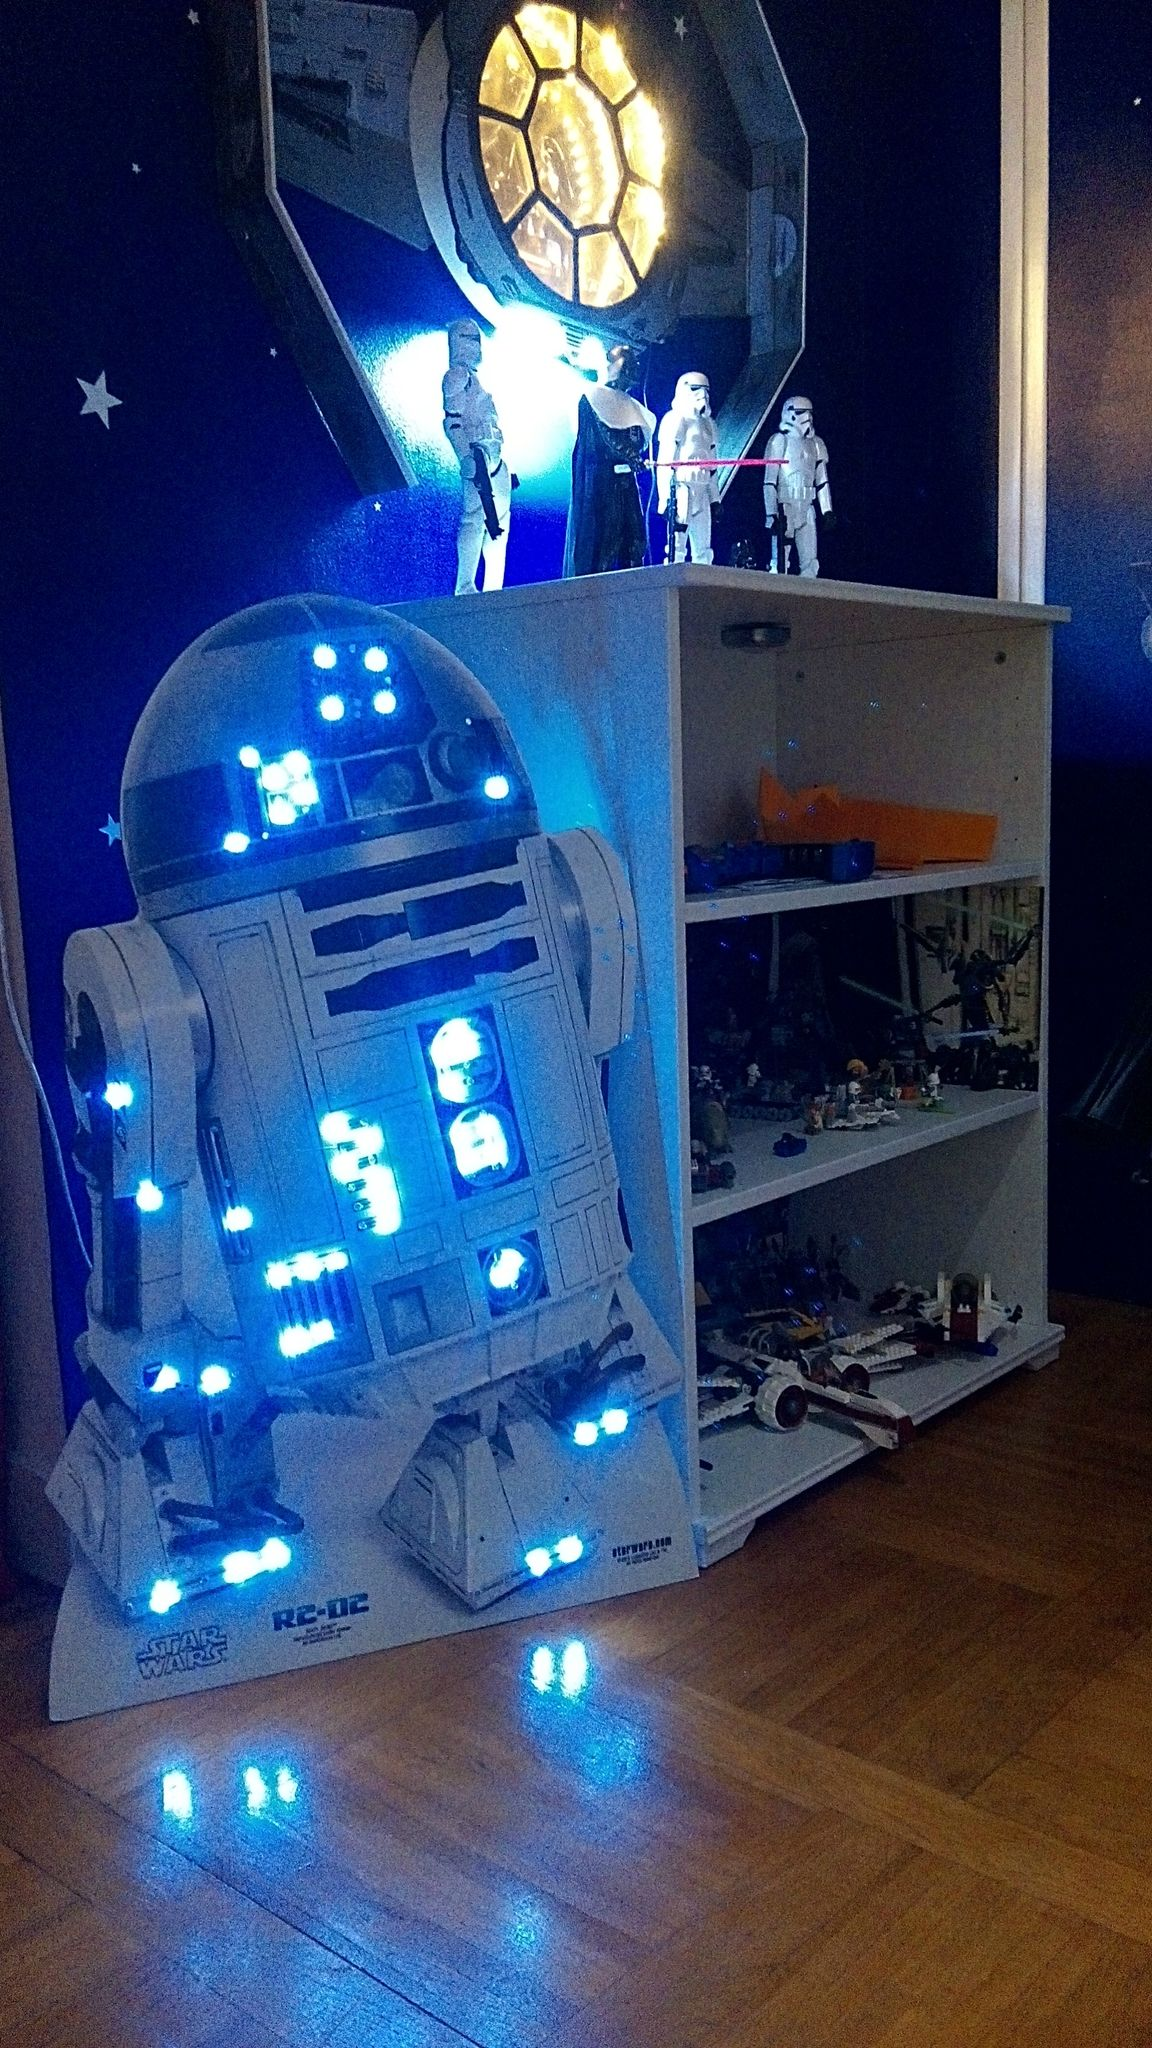 plus de 25 id es uniques dans la cat gorie chambre star wars sur pinterest chambre de star. Black Bedroom Furniture Sets. Home Design Ideas